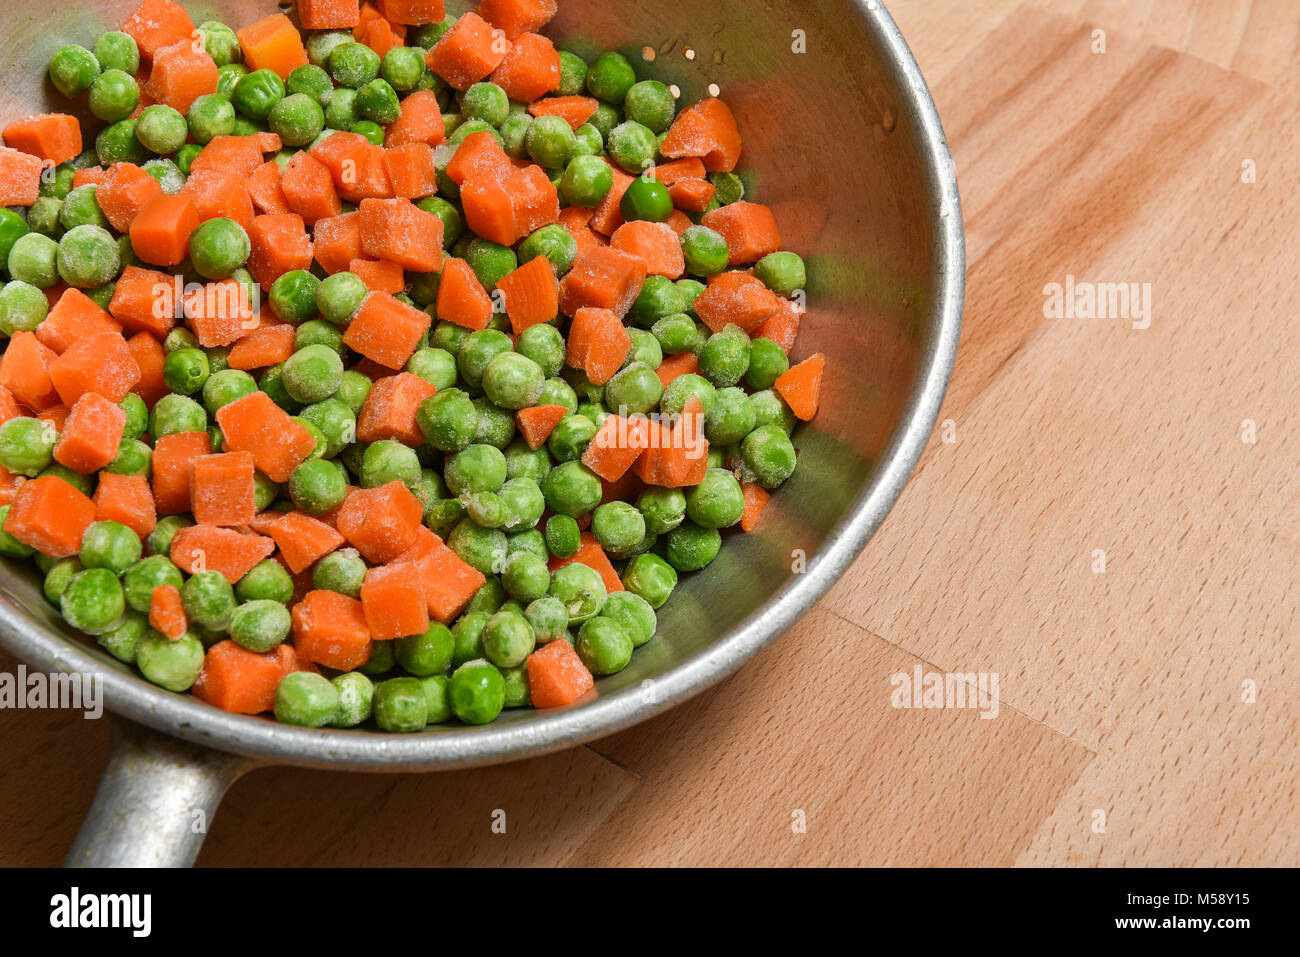 frozen peas and carrots - Stock Image